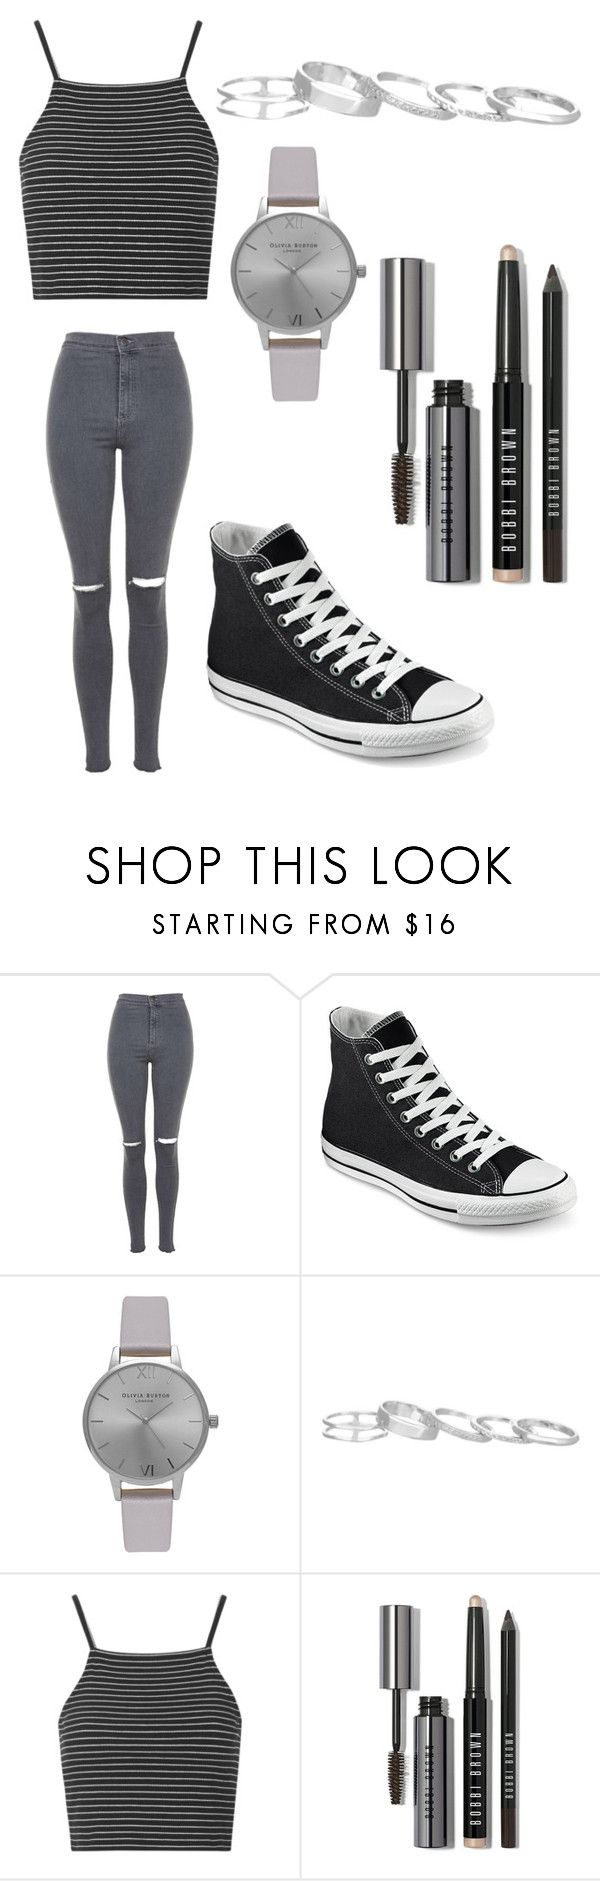 """Untitled #3"" by clizia9 ❤ liked on Polyvore featuring Topshop, Converse, Olivia Burton, Kendra Scott and Bobbi Brown Cosmetics"